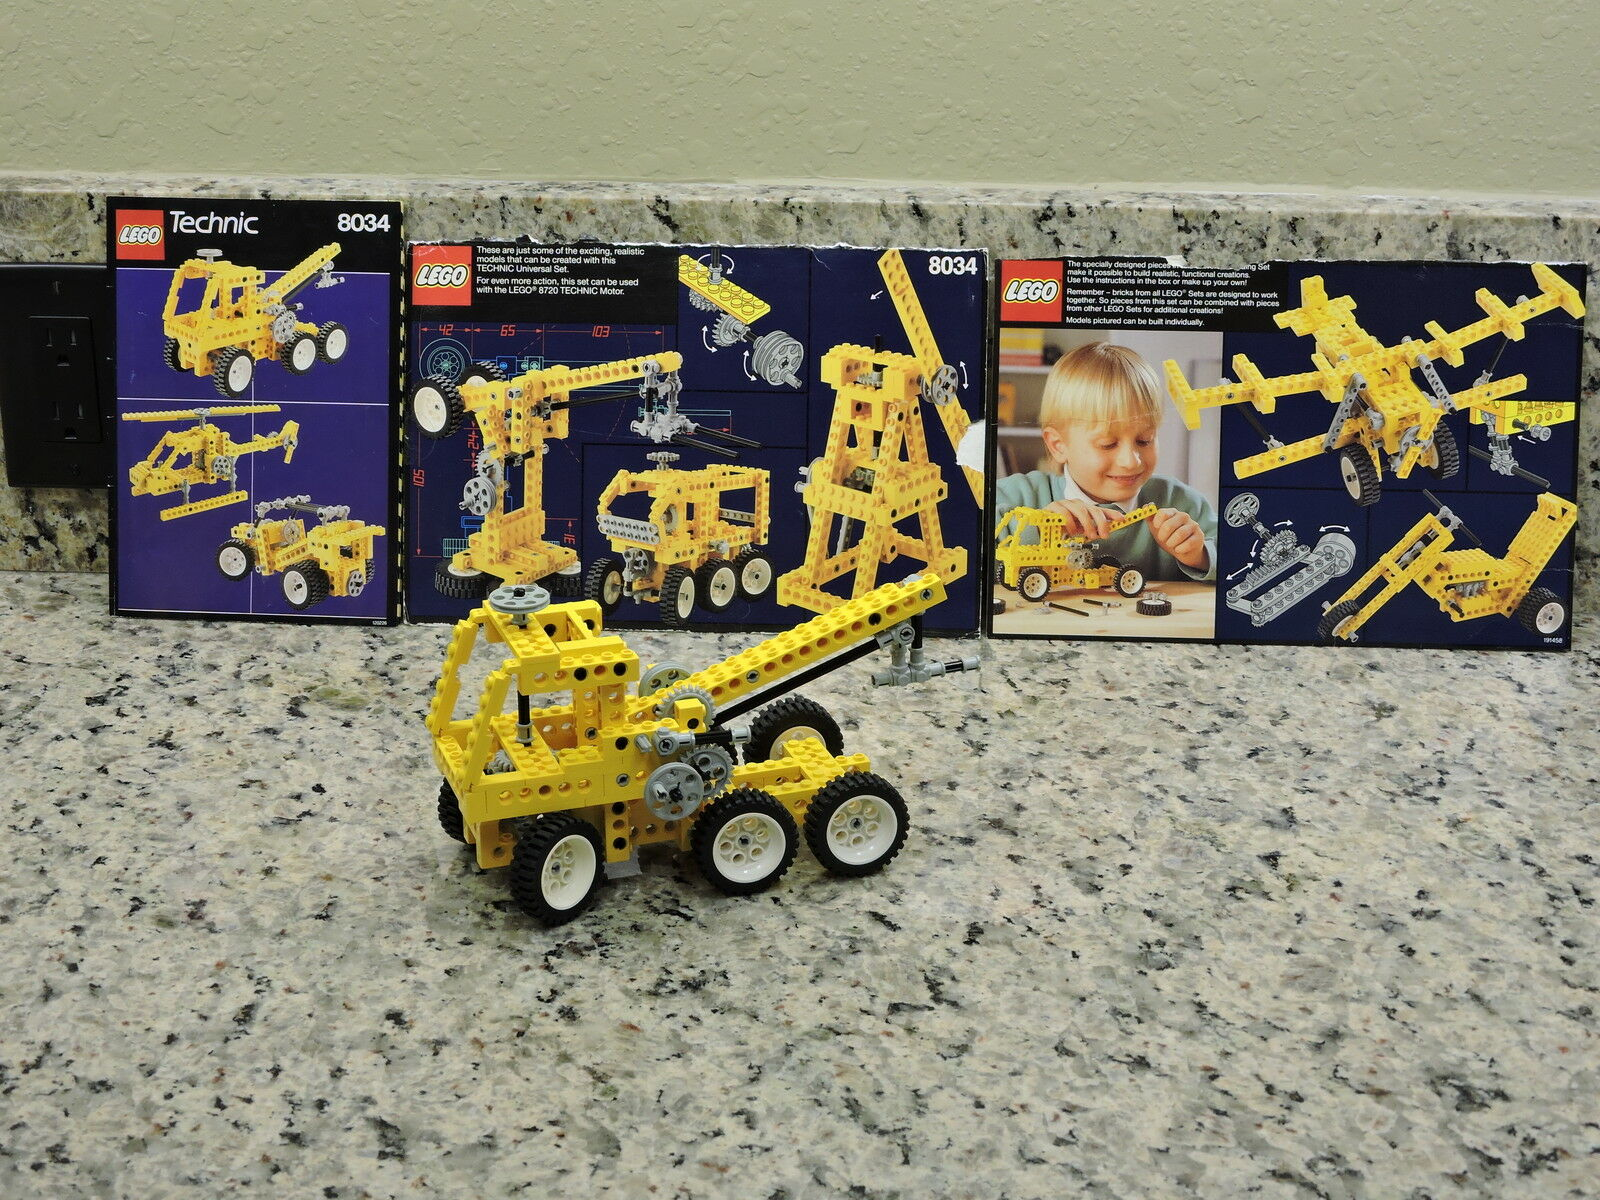 Lego Technic Universal Set  8034  Complete with Instructions-Rare